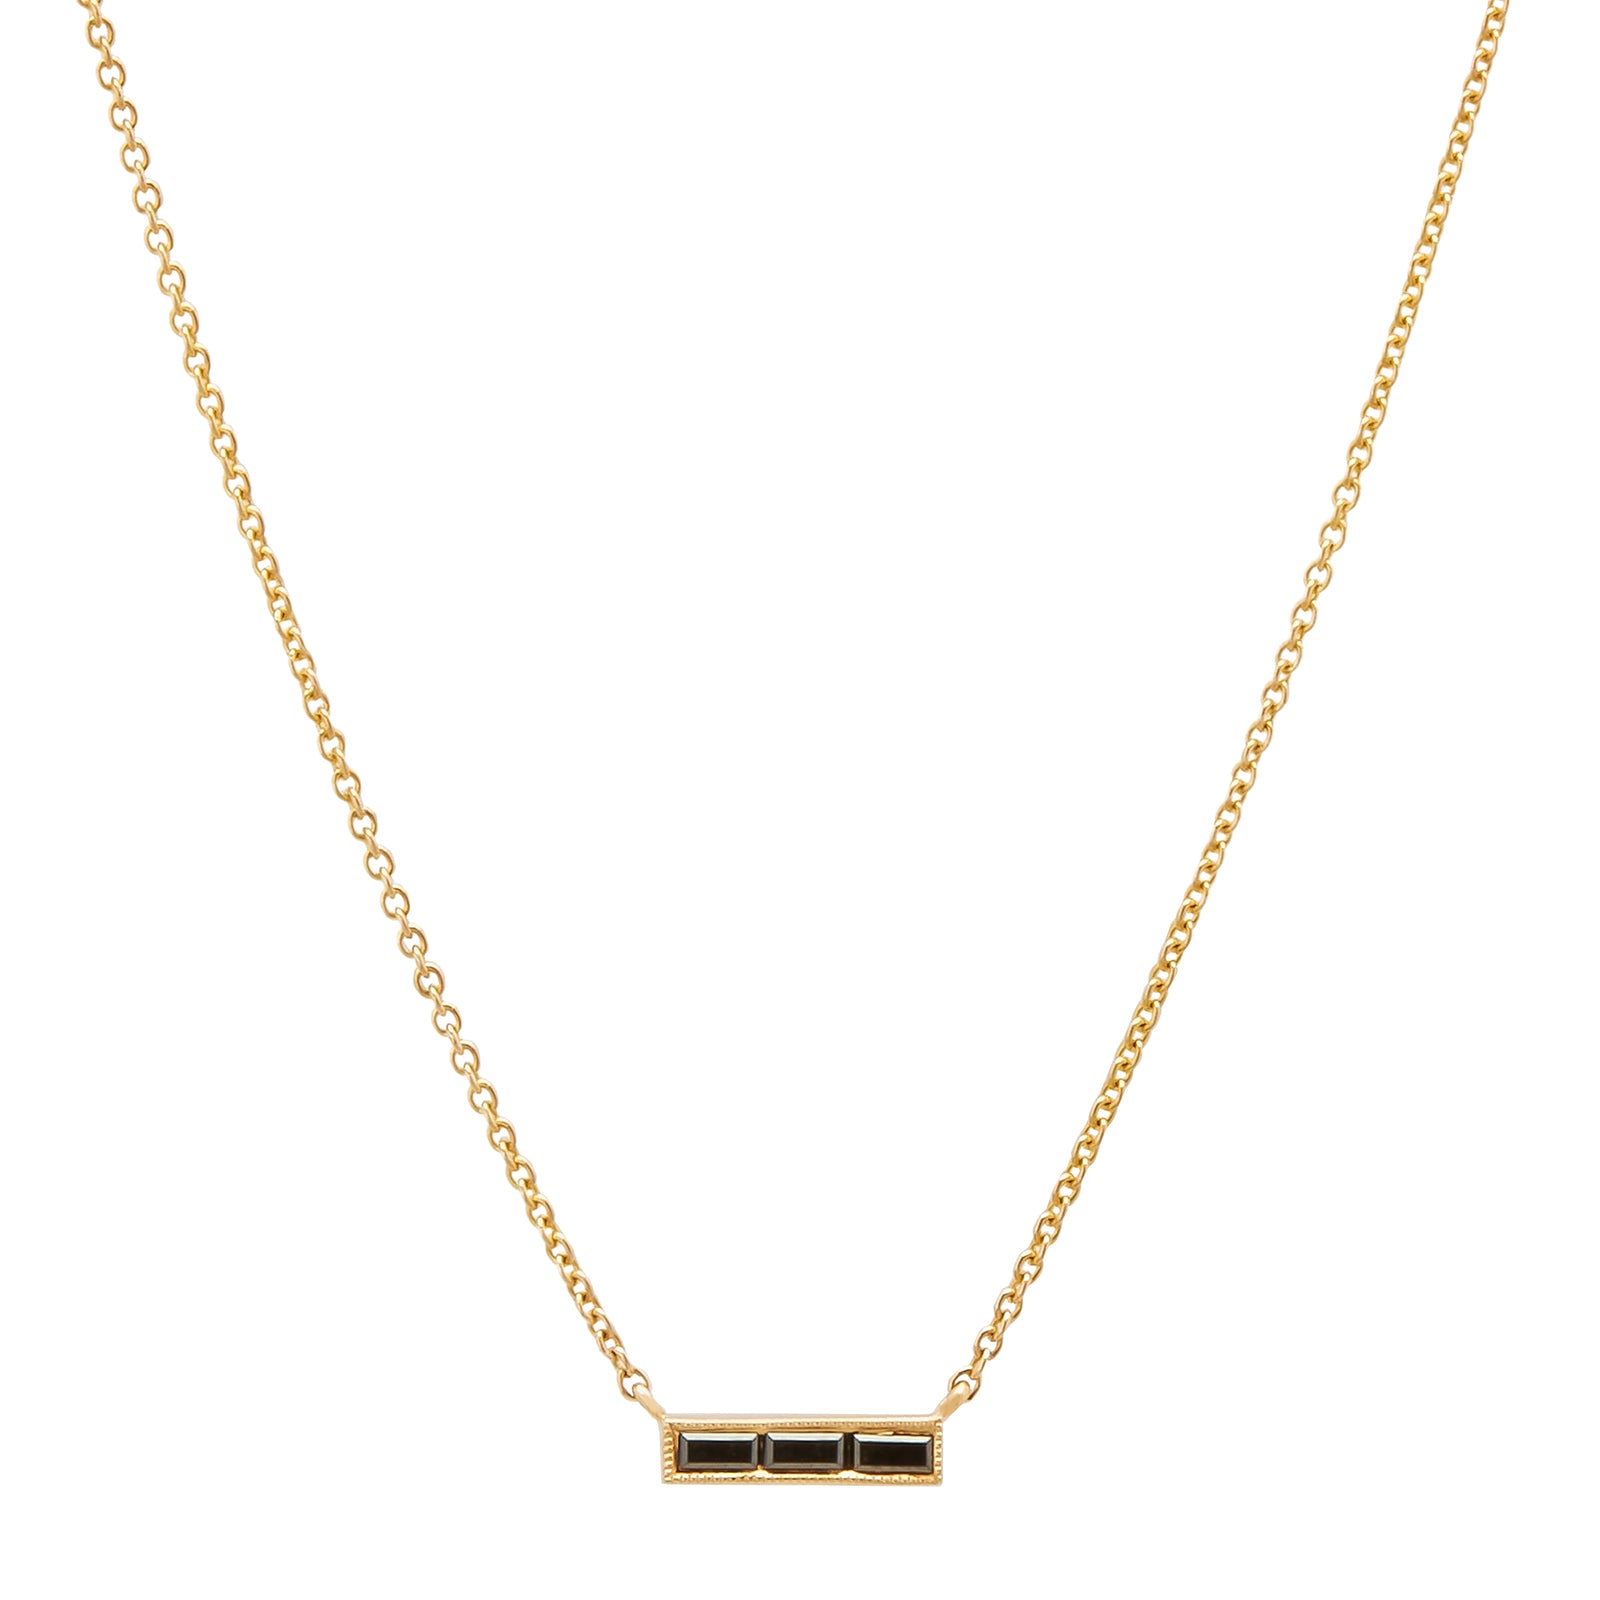 Sethi Couture Black Baguette Diamond Necklace - Gold - Necklaces - Broken English Jewelry